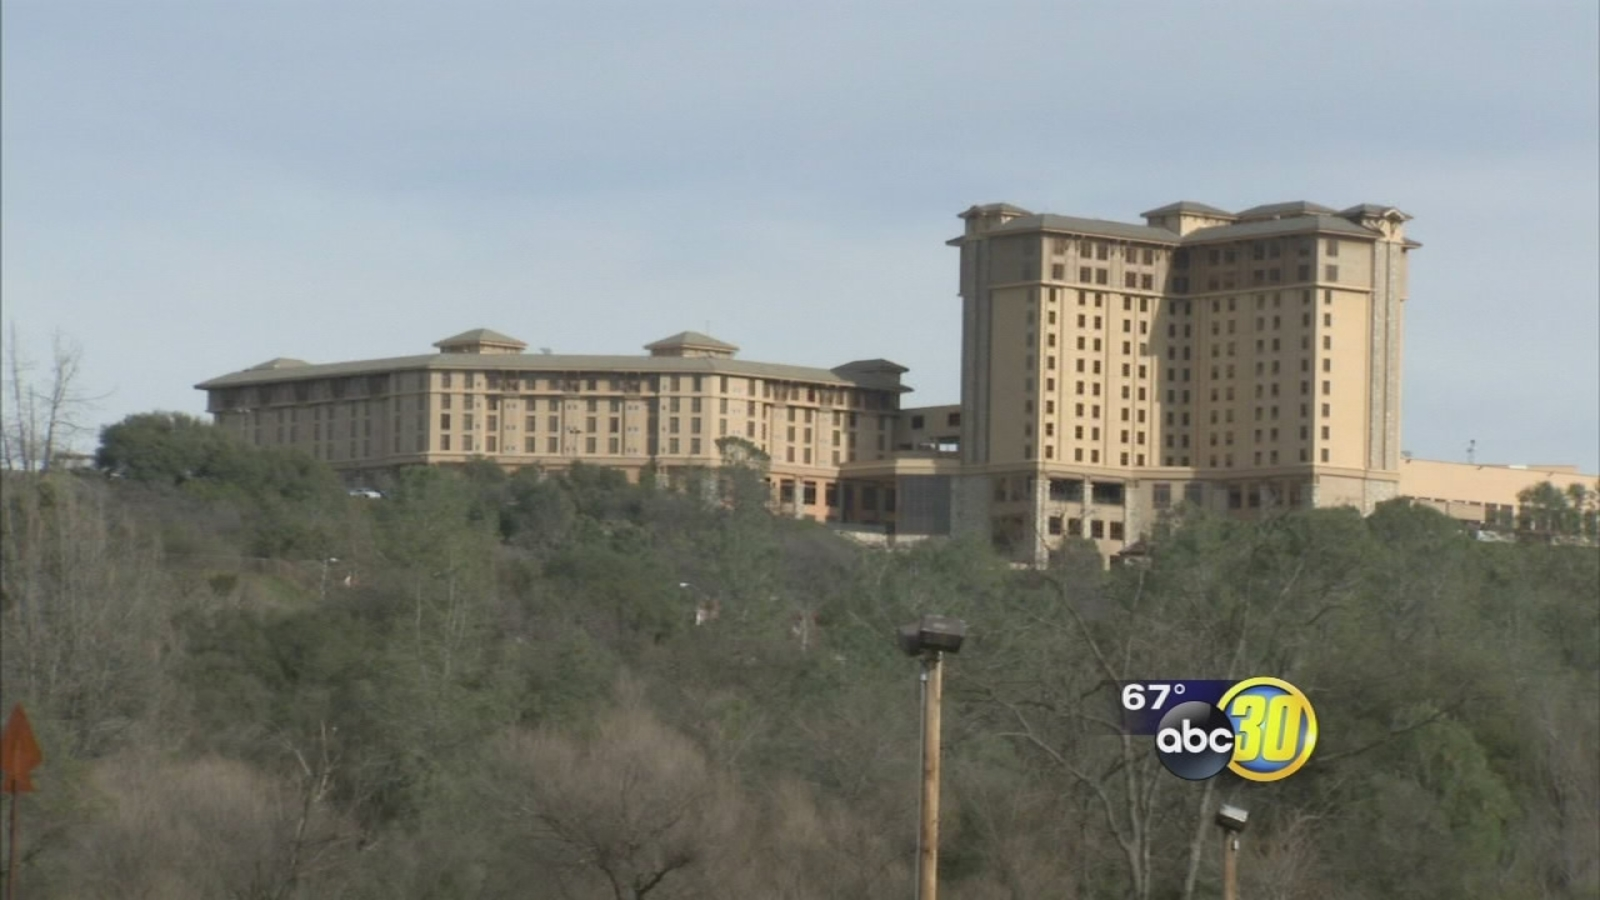 Construction Workers Find Remains Near Chukchansi Gold Resort And